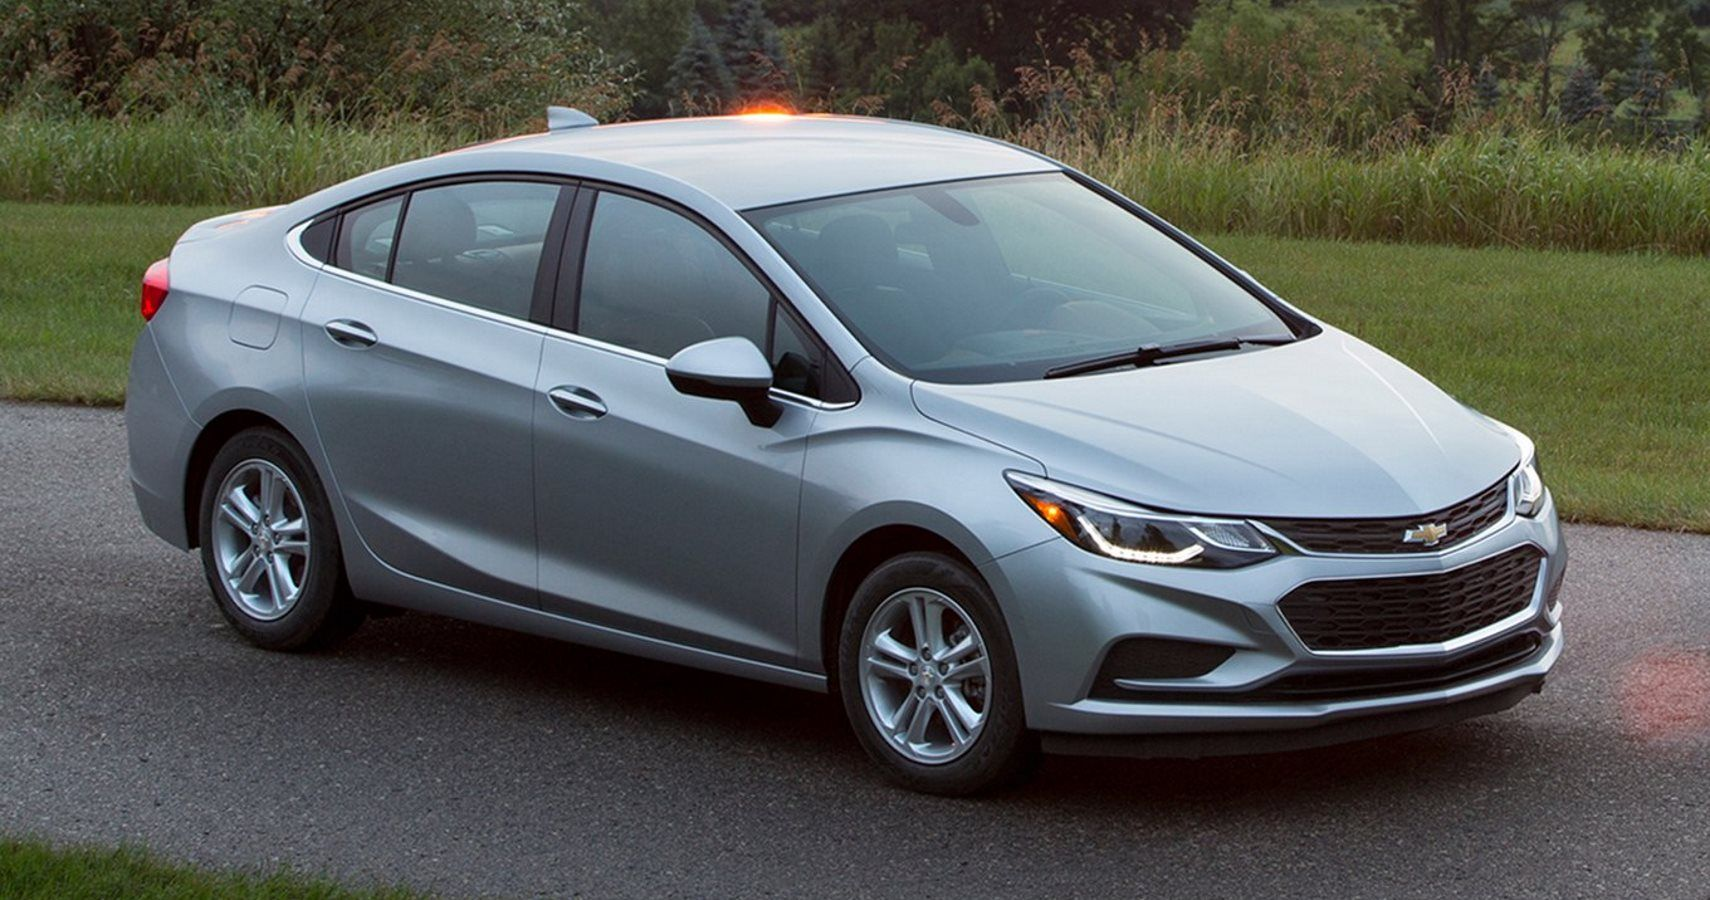 Chevrolet Recalls Thousands Of Cruze LS Vehicles For Fire Risk